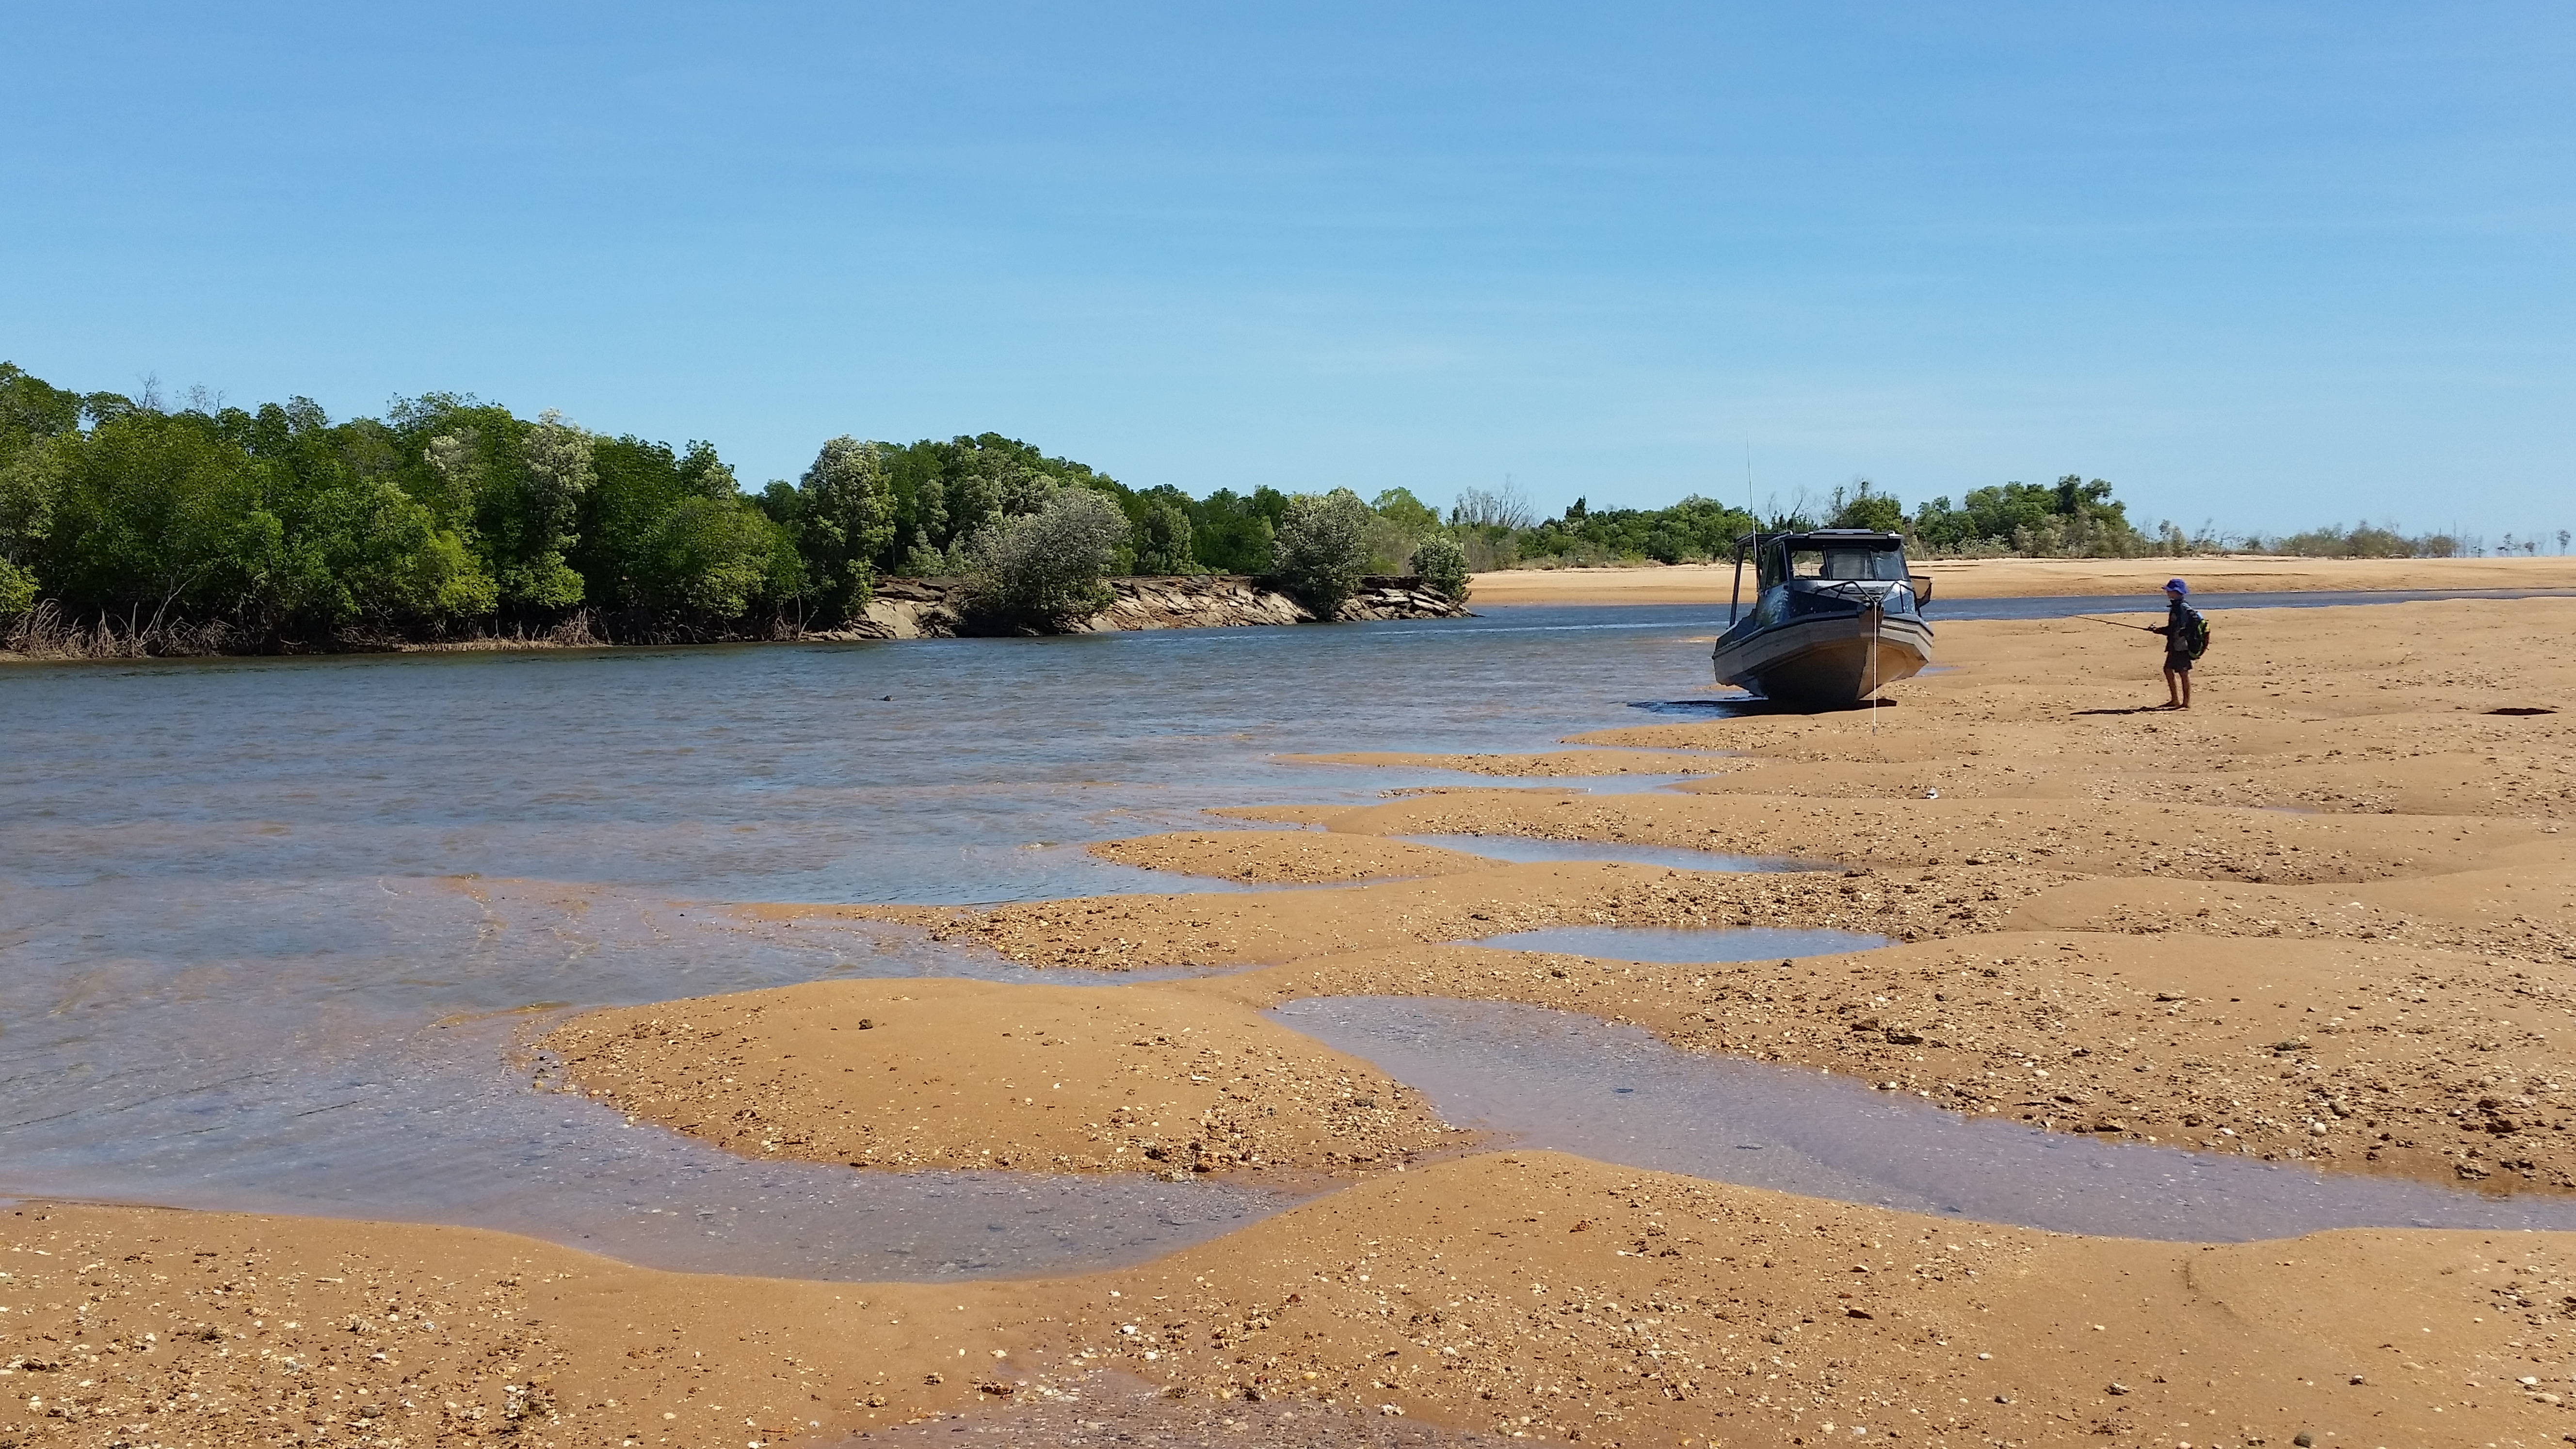 Our 7.5m Stabicraft at a remote camp in the NT